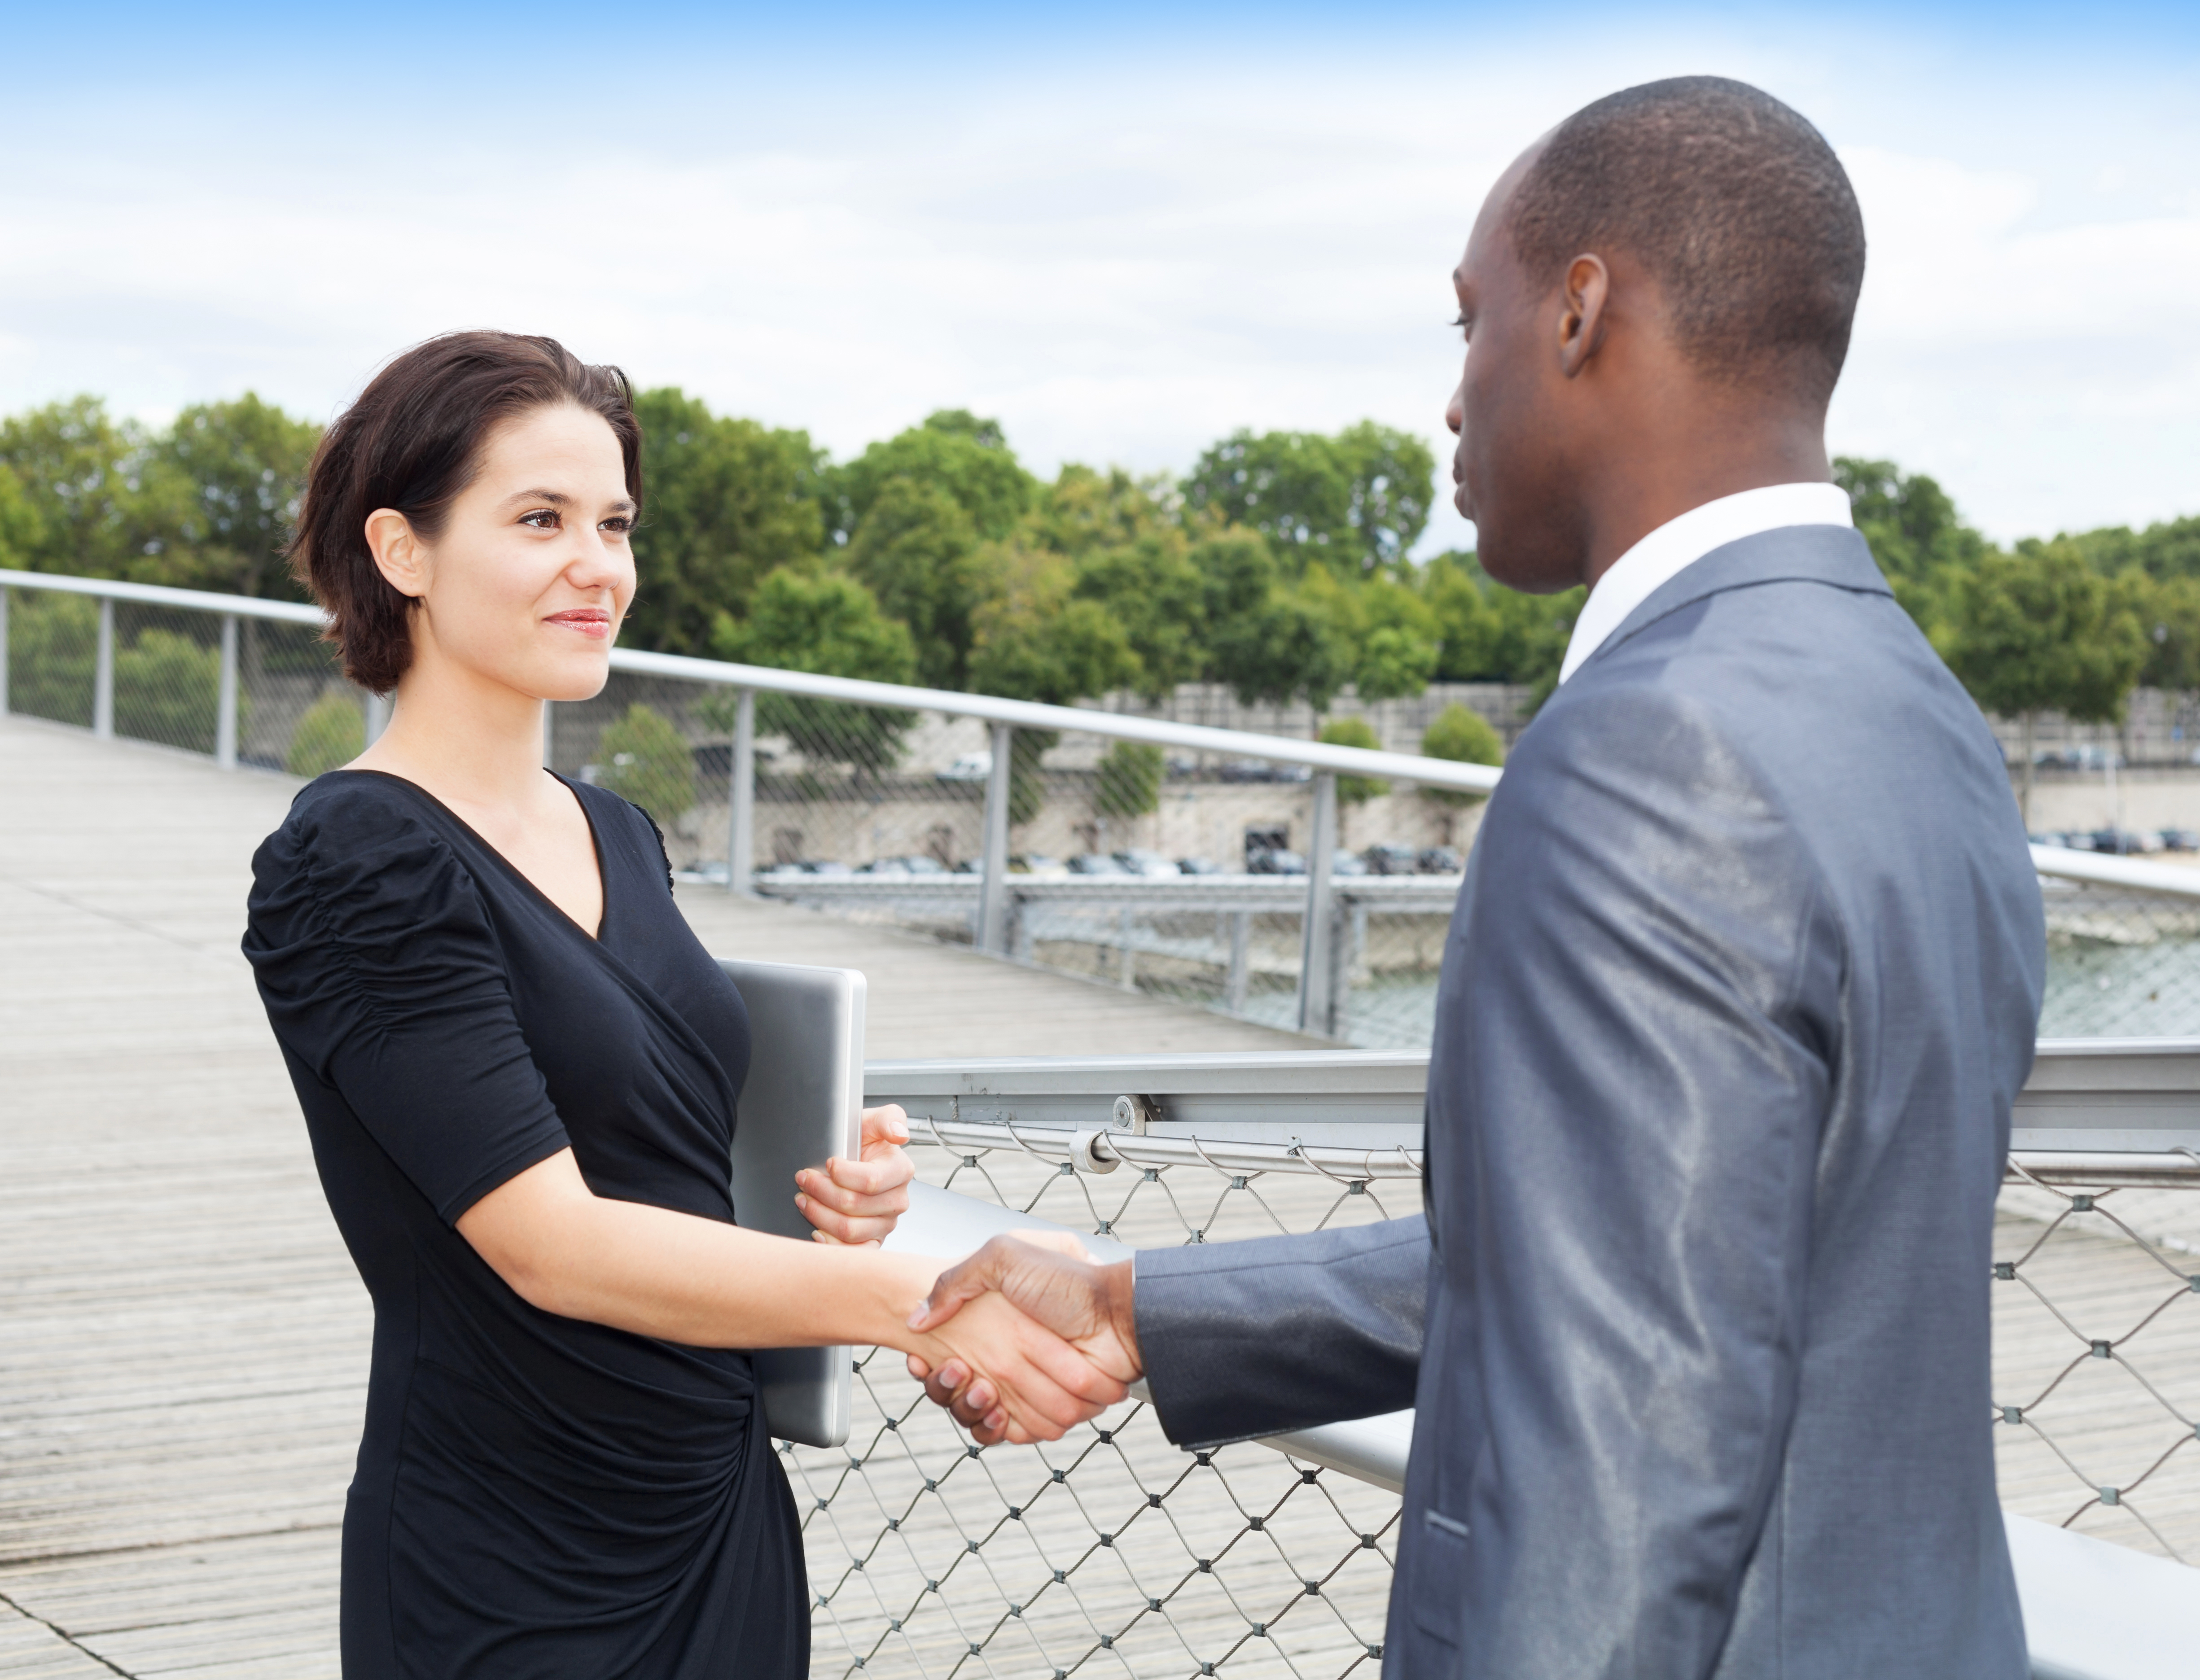 REALTOR and client shaking hands outside